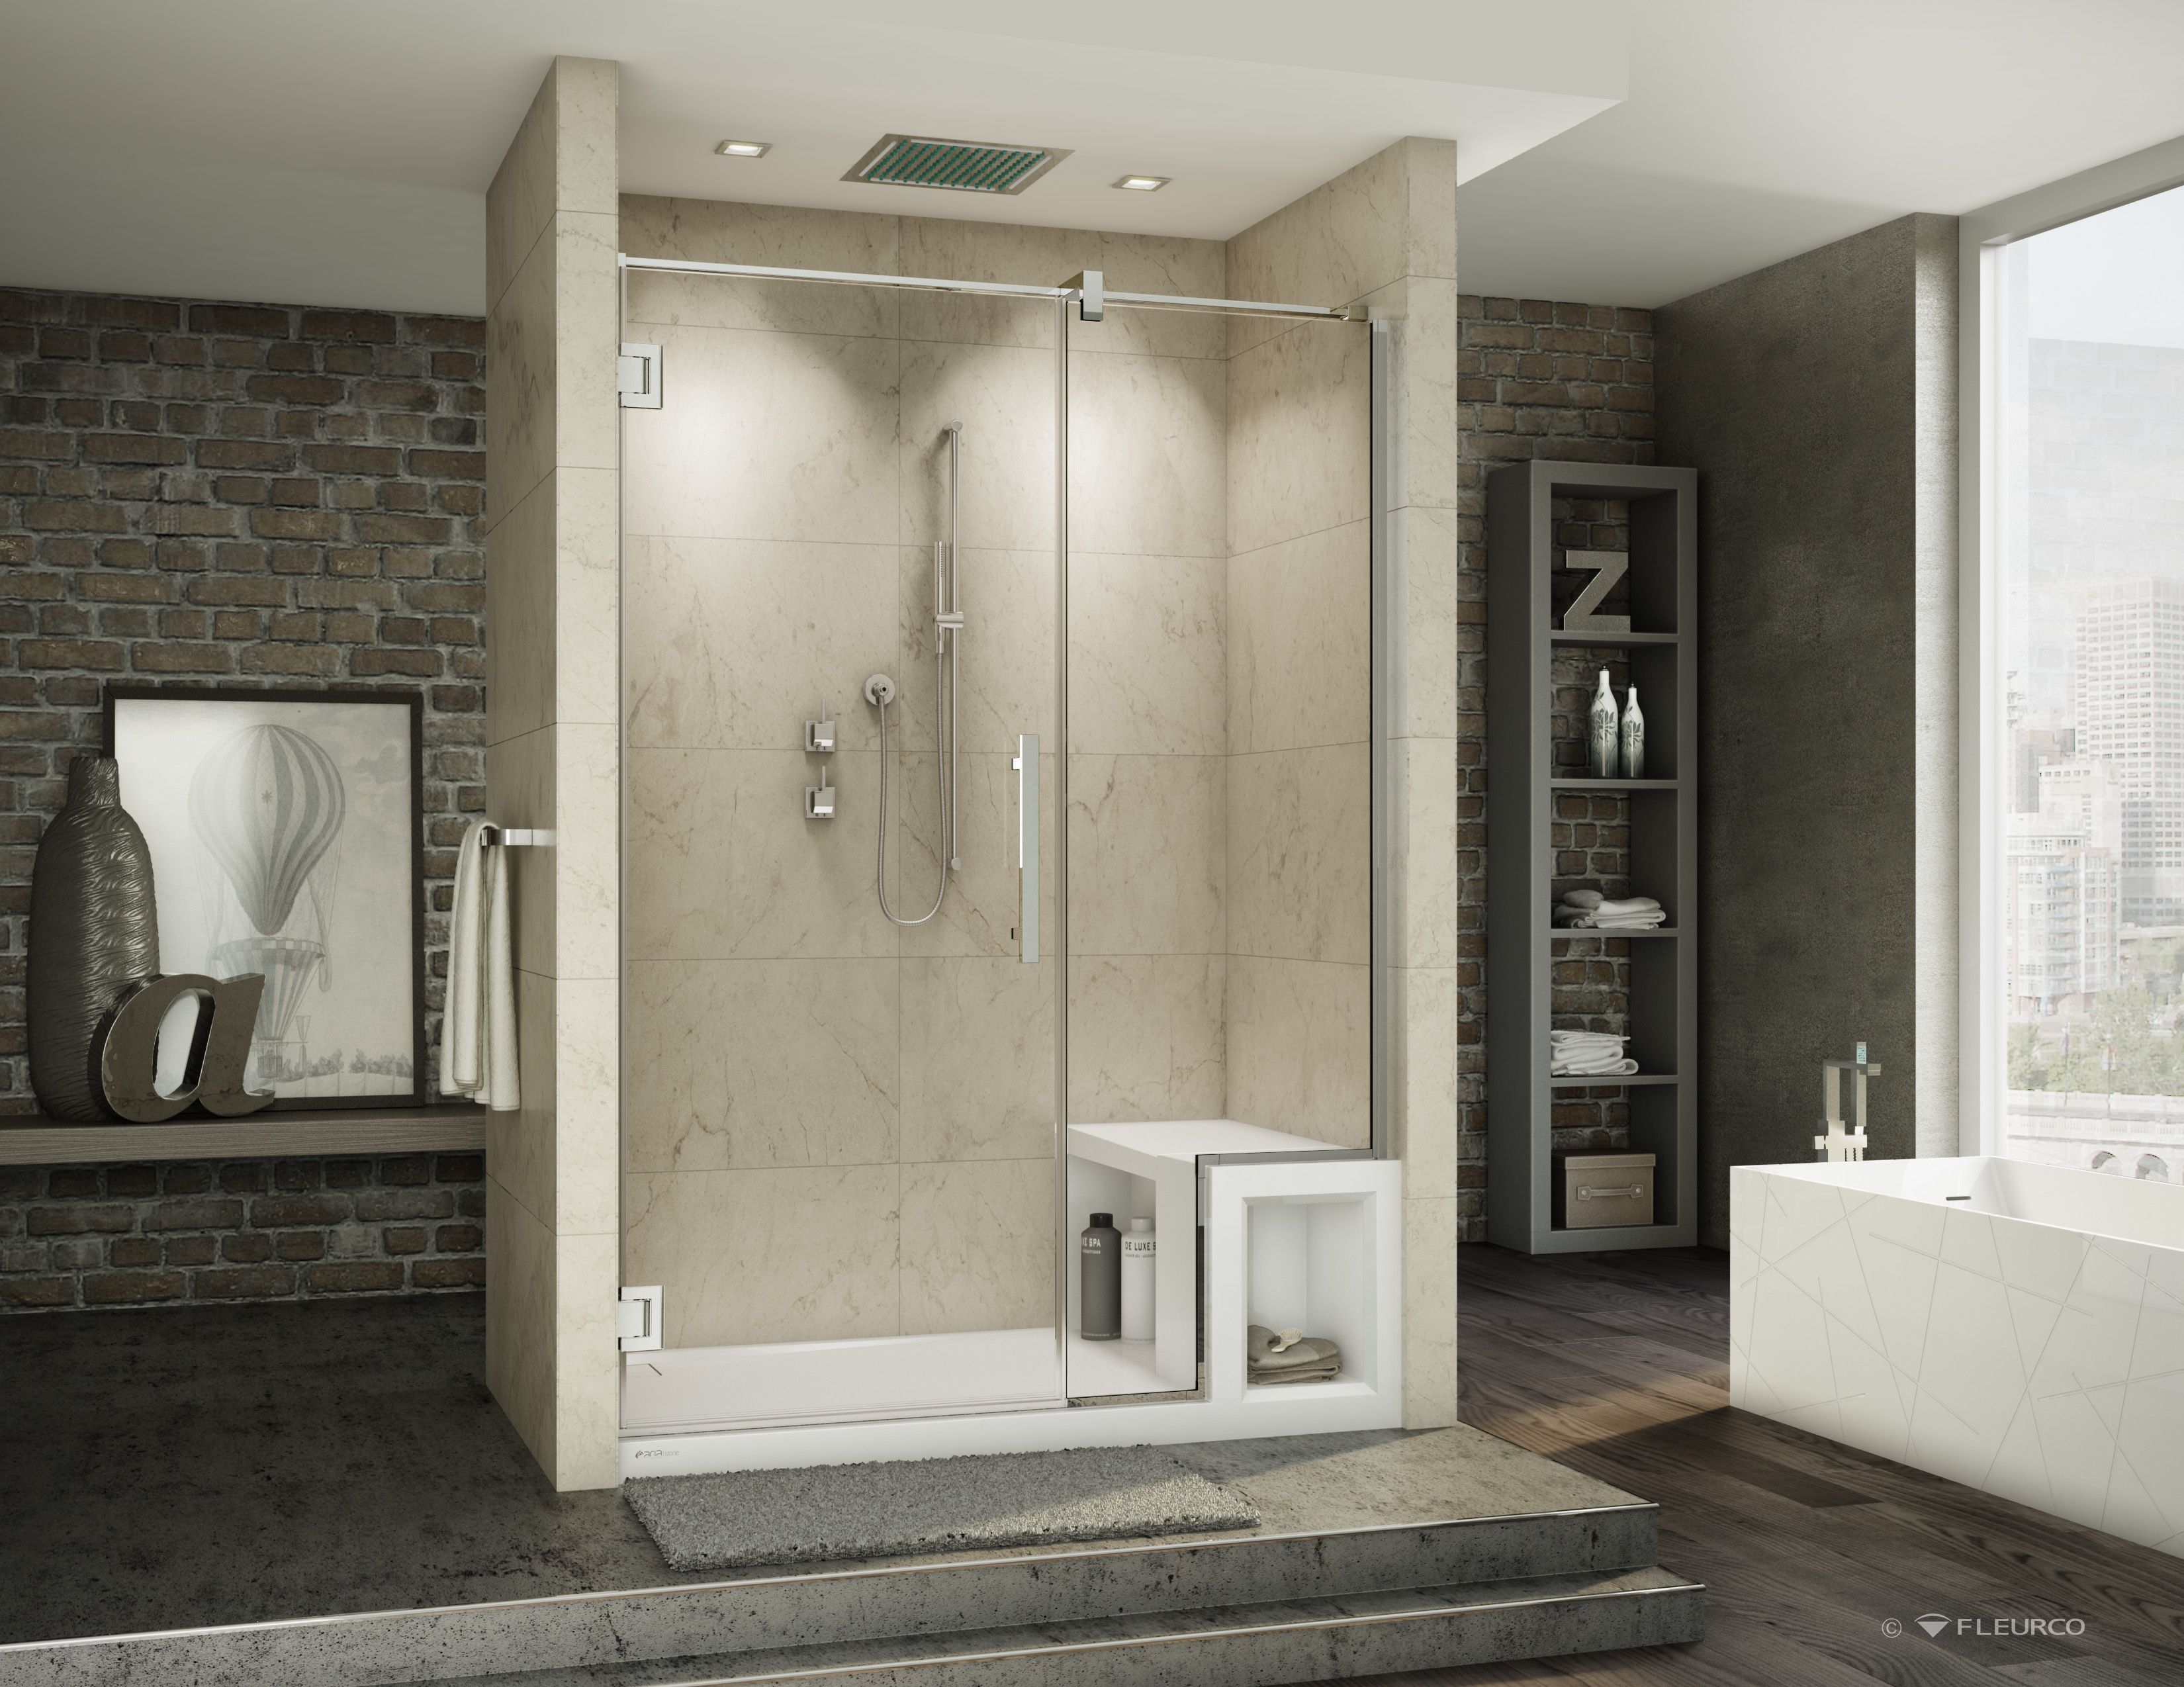 Shower Bases With Bench Seats | On The Bench: Great Bases From Fleurco |  Mecc